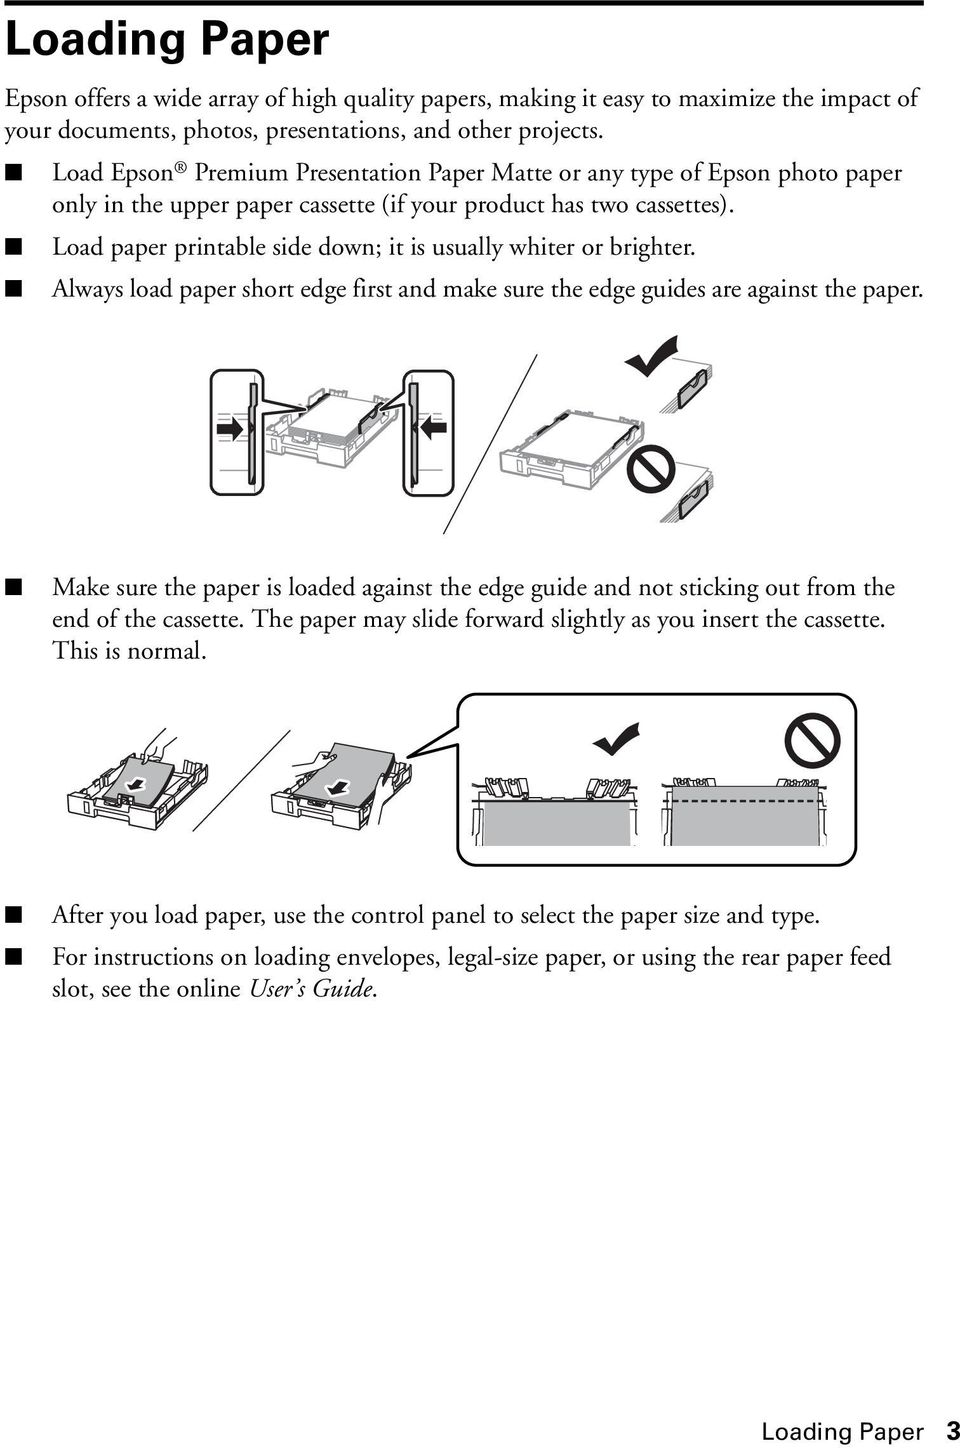 Load paper printable side down; it is usually whiter or brighter. Always load paper short edge first and make sure the edge guides are against the paper.